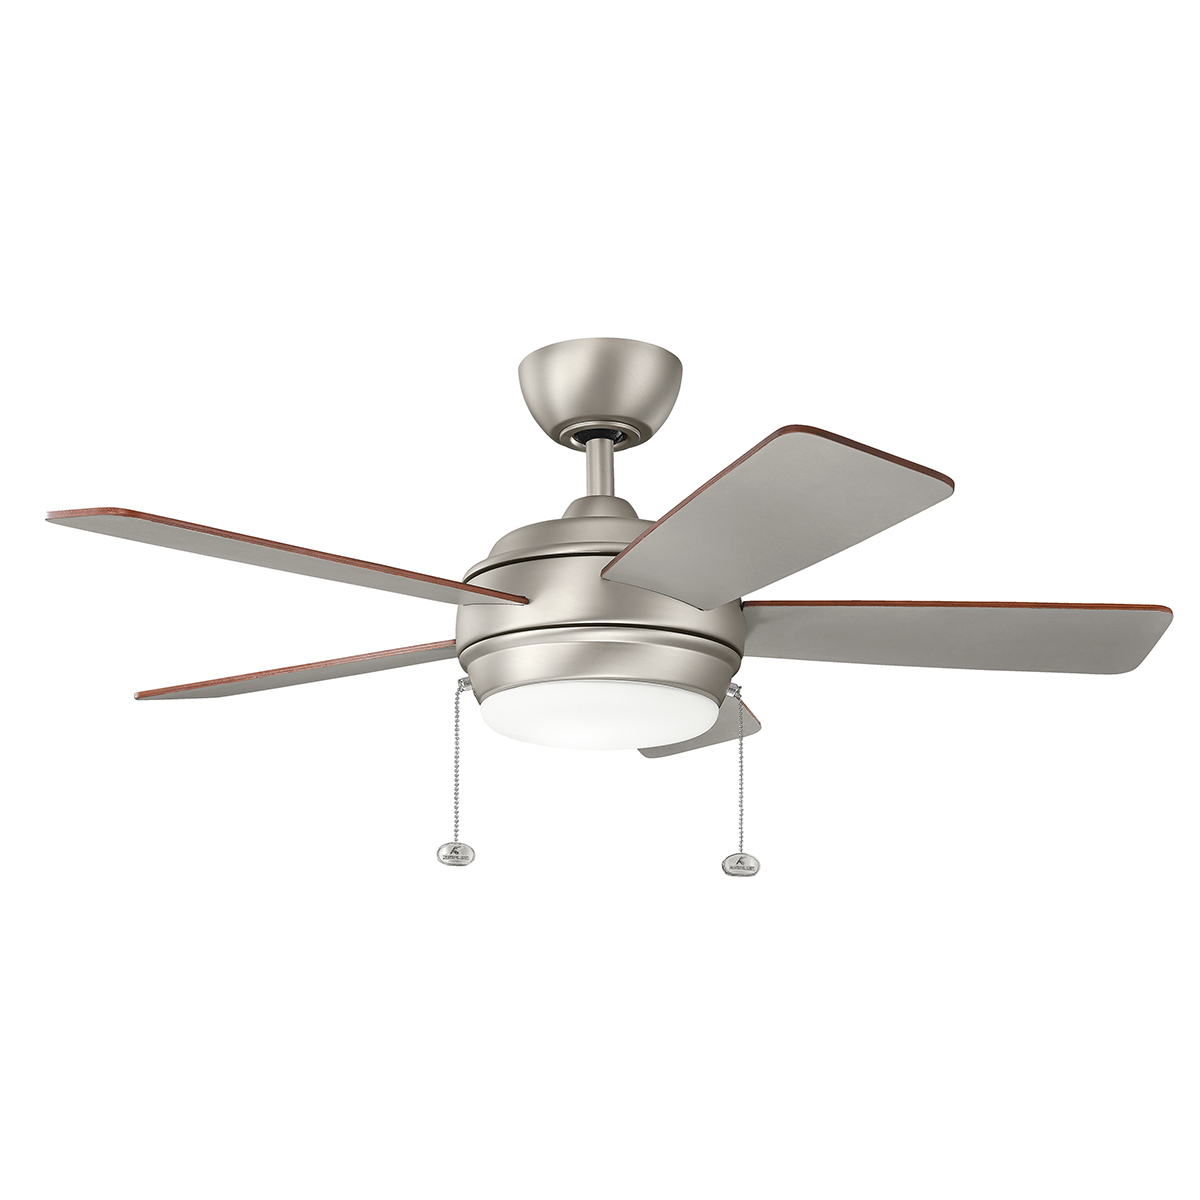 42 inchCeiling Fan from the Starkk collection by Kichler 330171NI